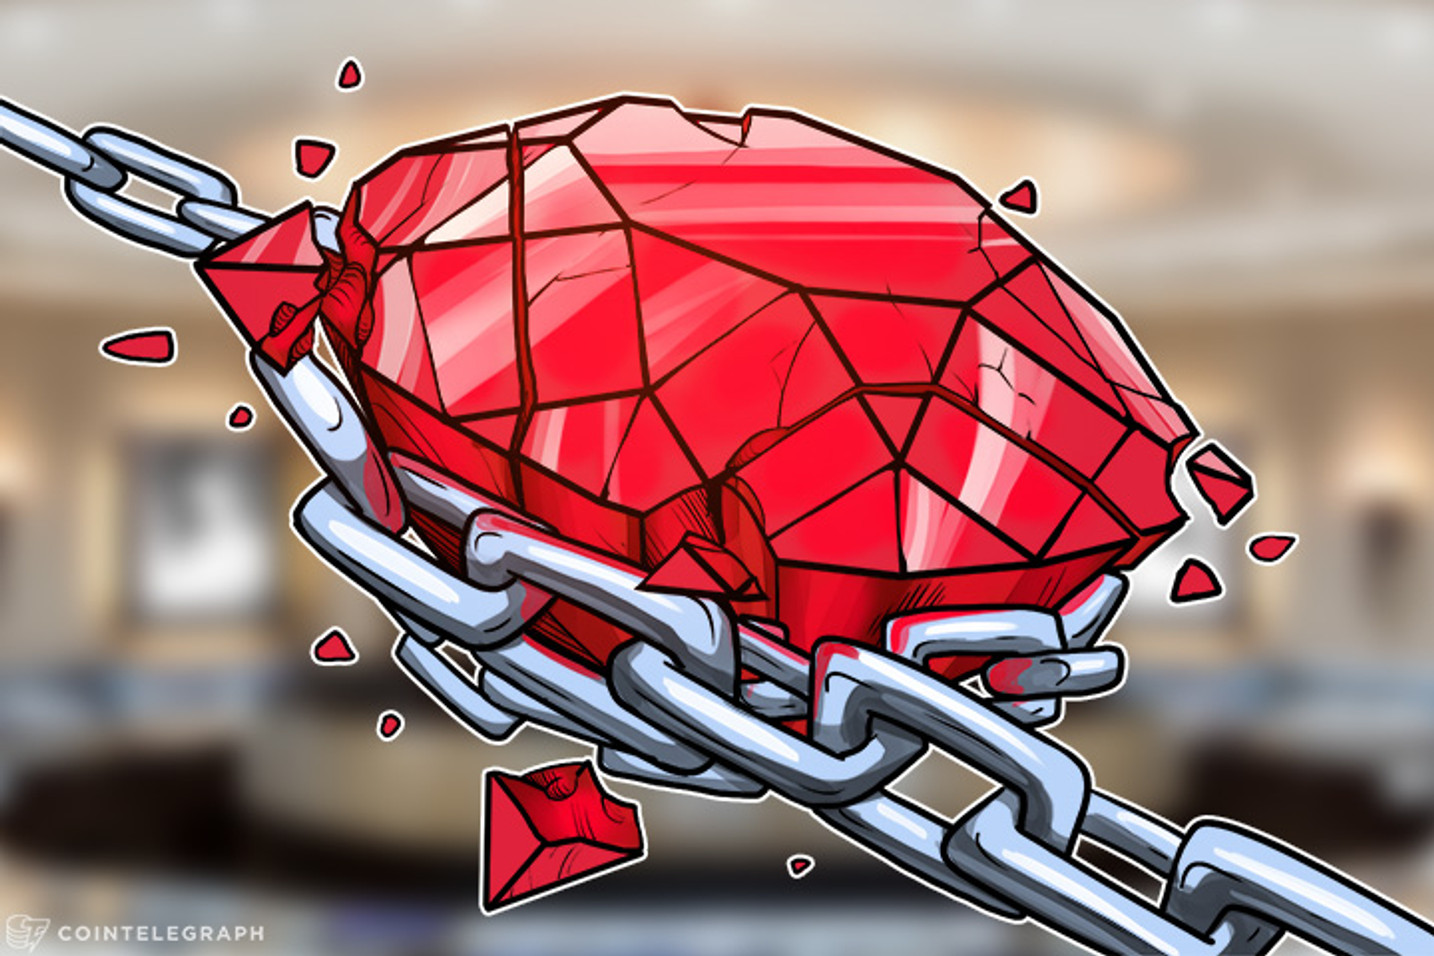 Blockchain Is Used To Fight Blood Diamonds and Counterfeits